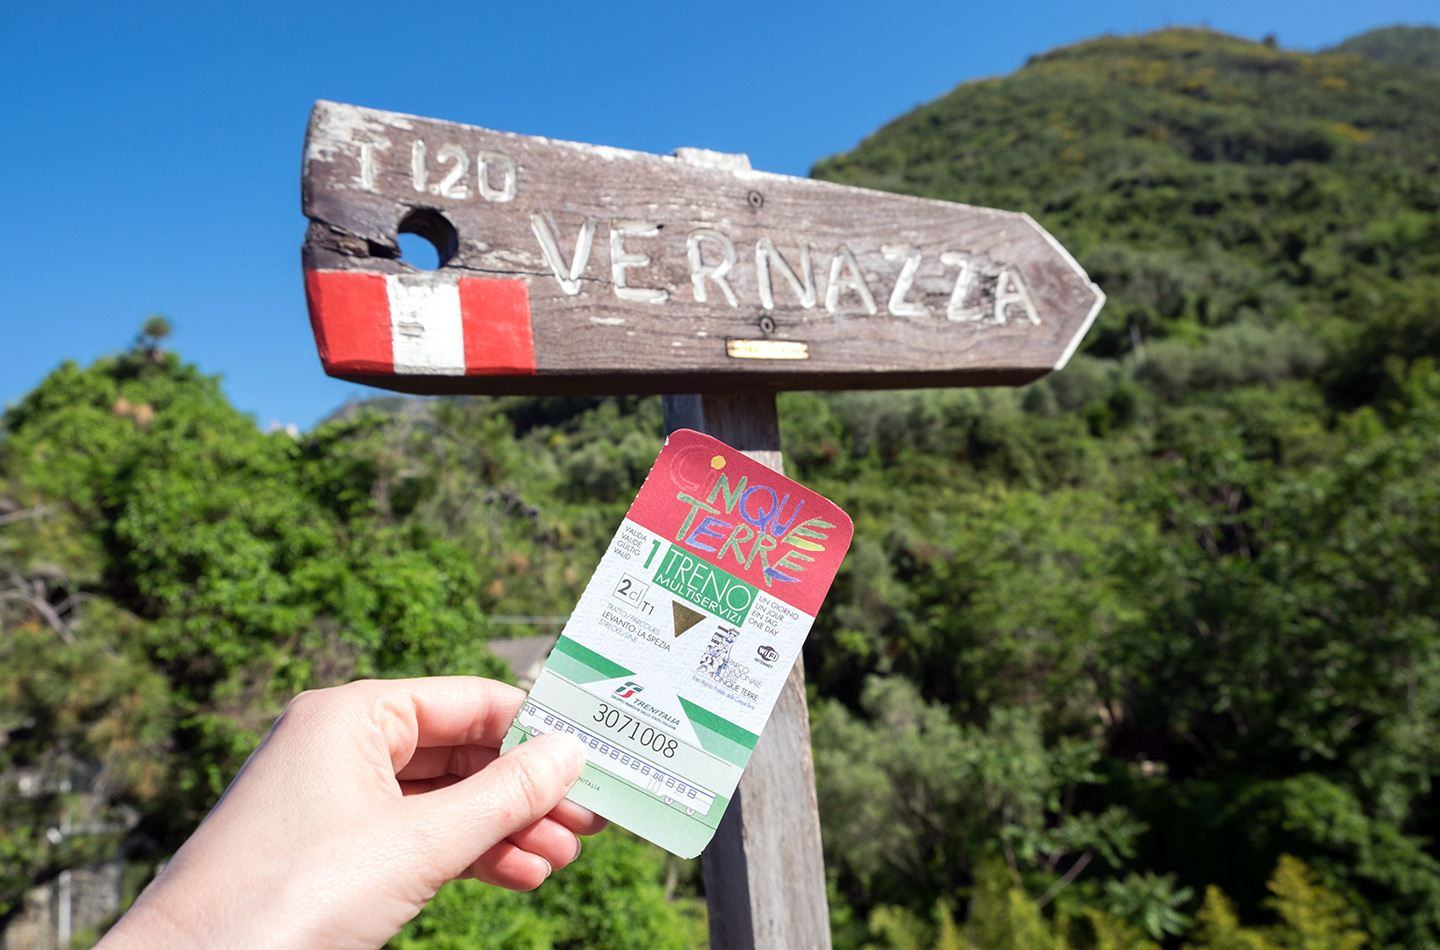 The first-timers guide to visiting the Cinque Terre – Cinque Terre Card